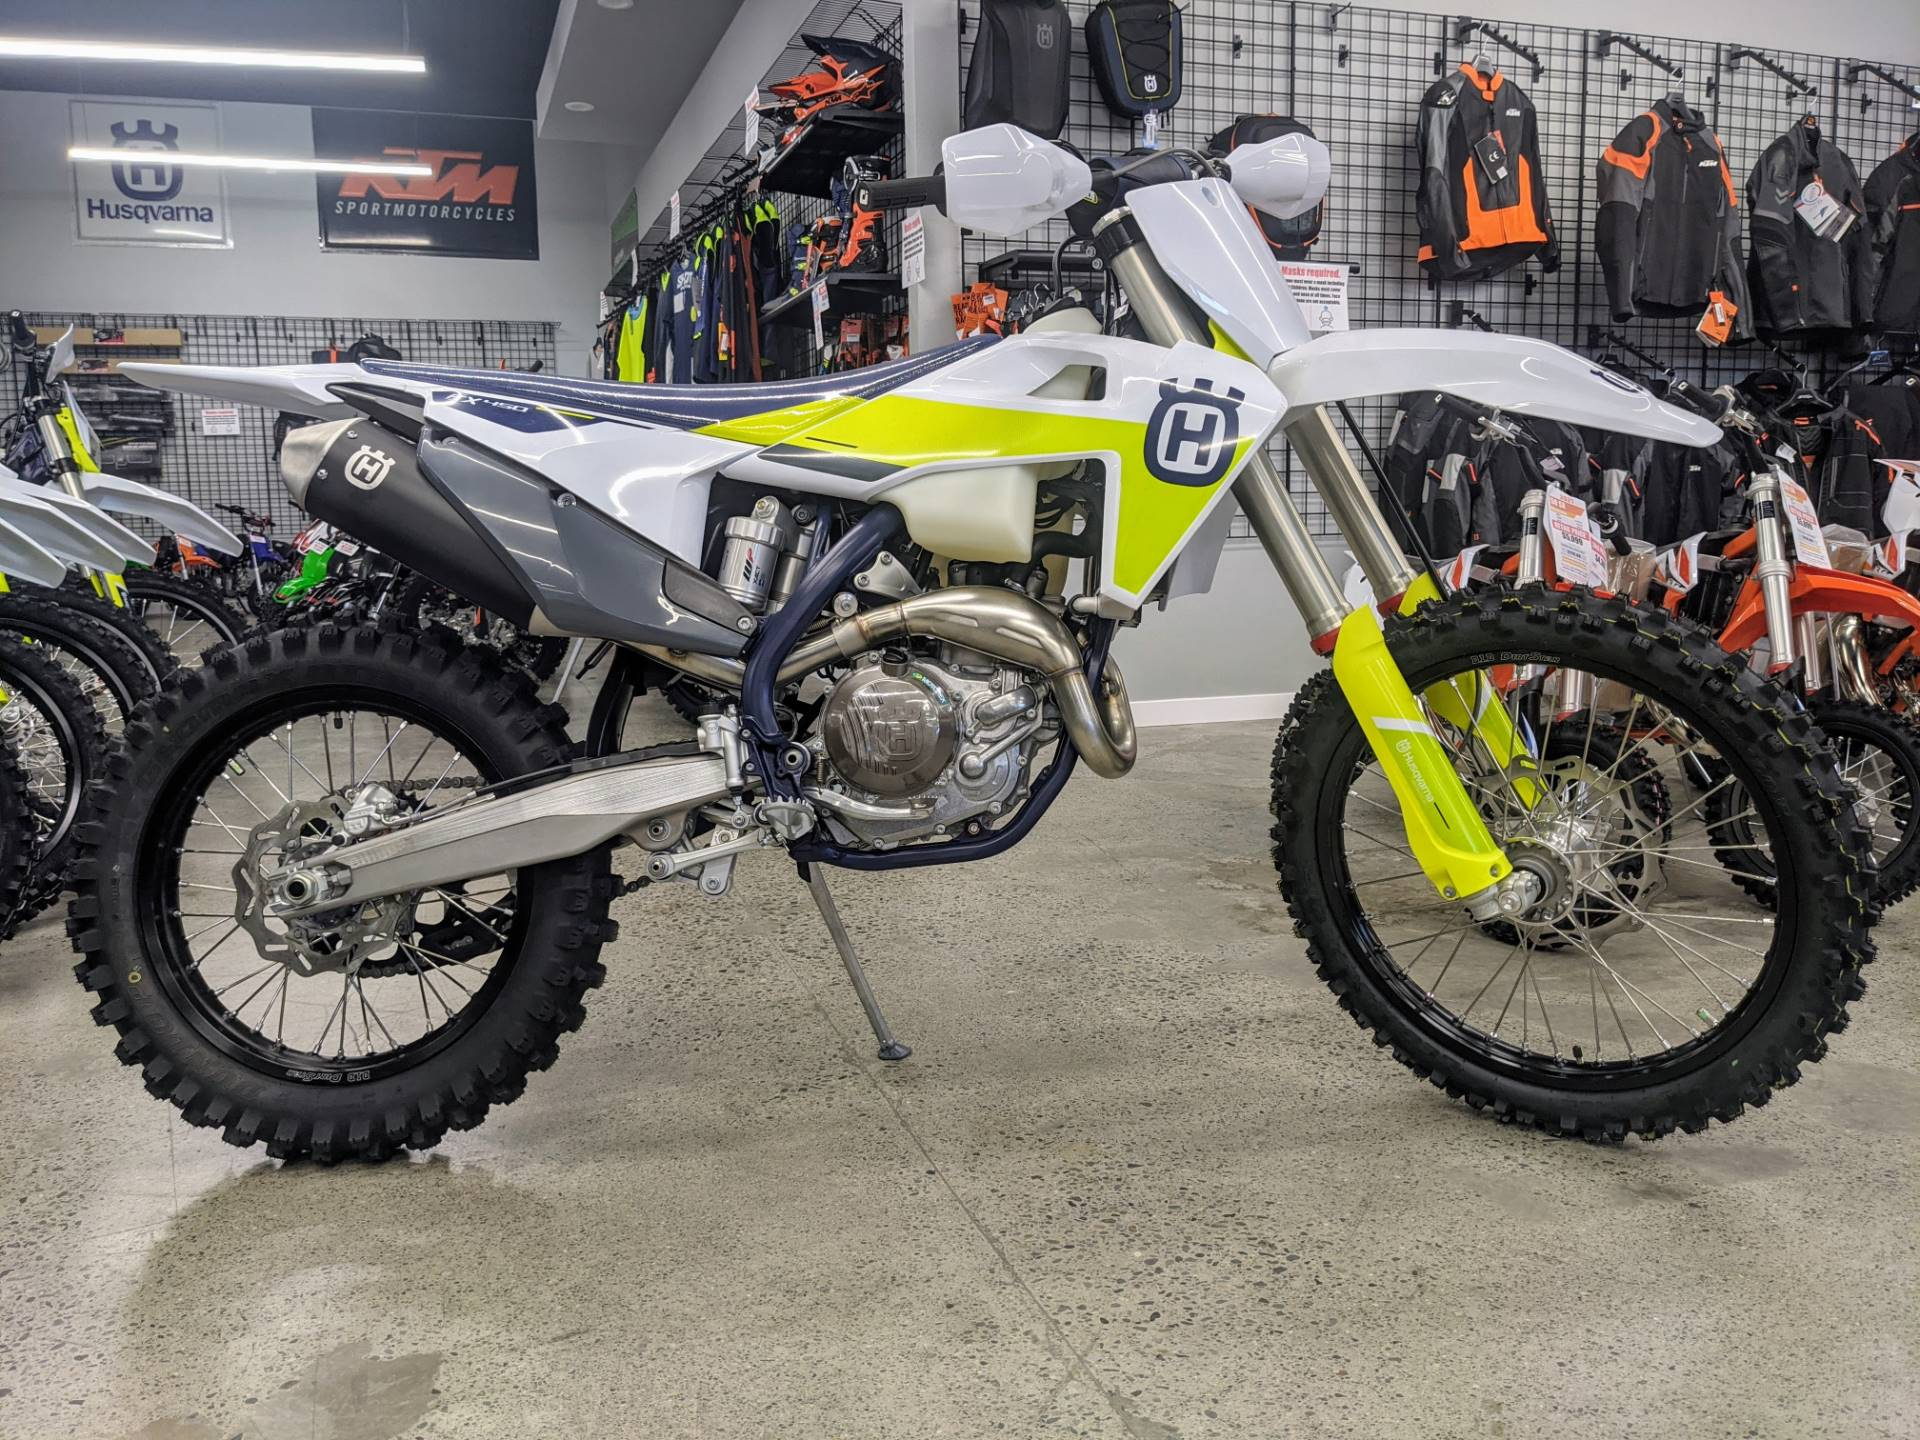 2021 Husqvarna FX 450 in Gresham, Oregon - Photo 1